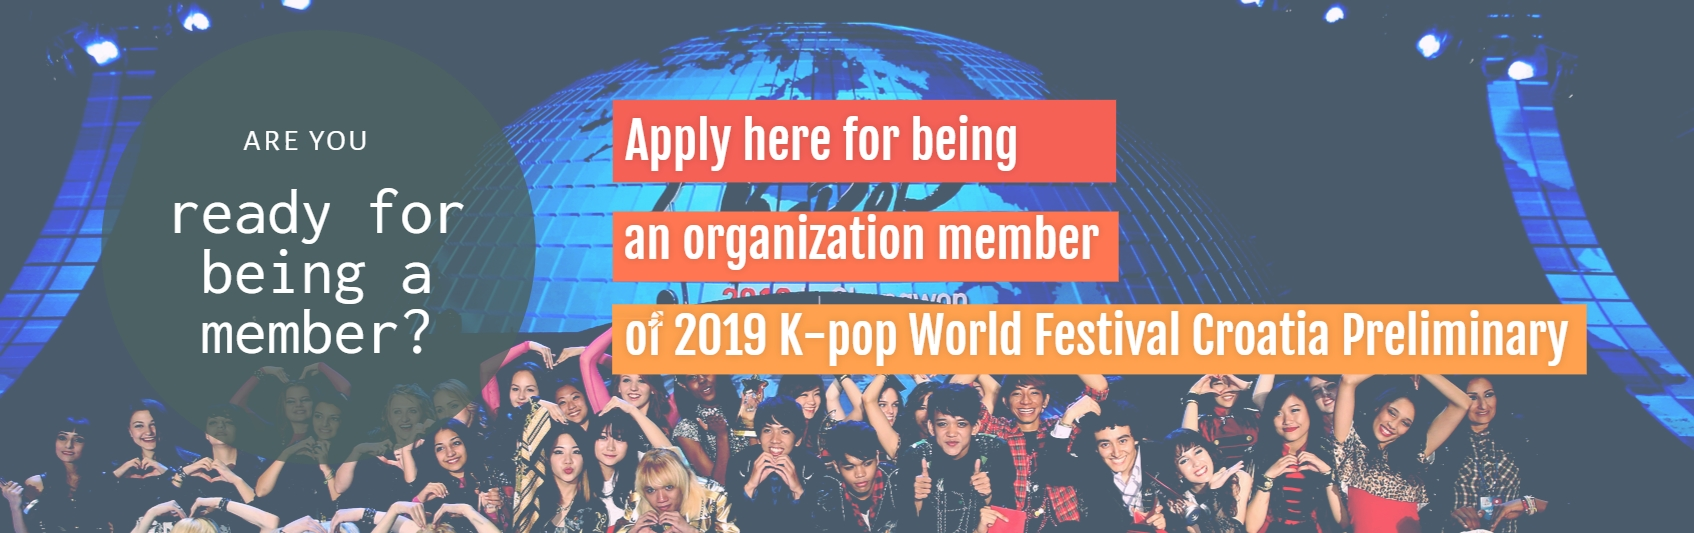 Recruitment of organization team for 2019 K-pop World Festival Croatia Preliminary